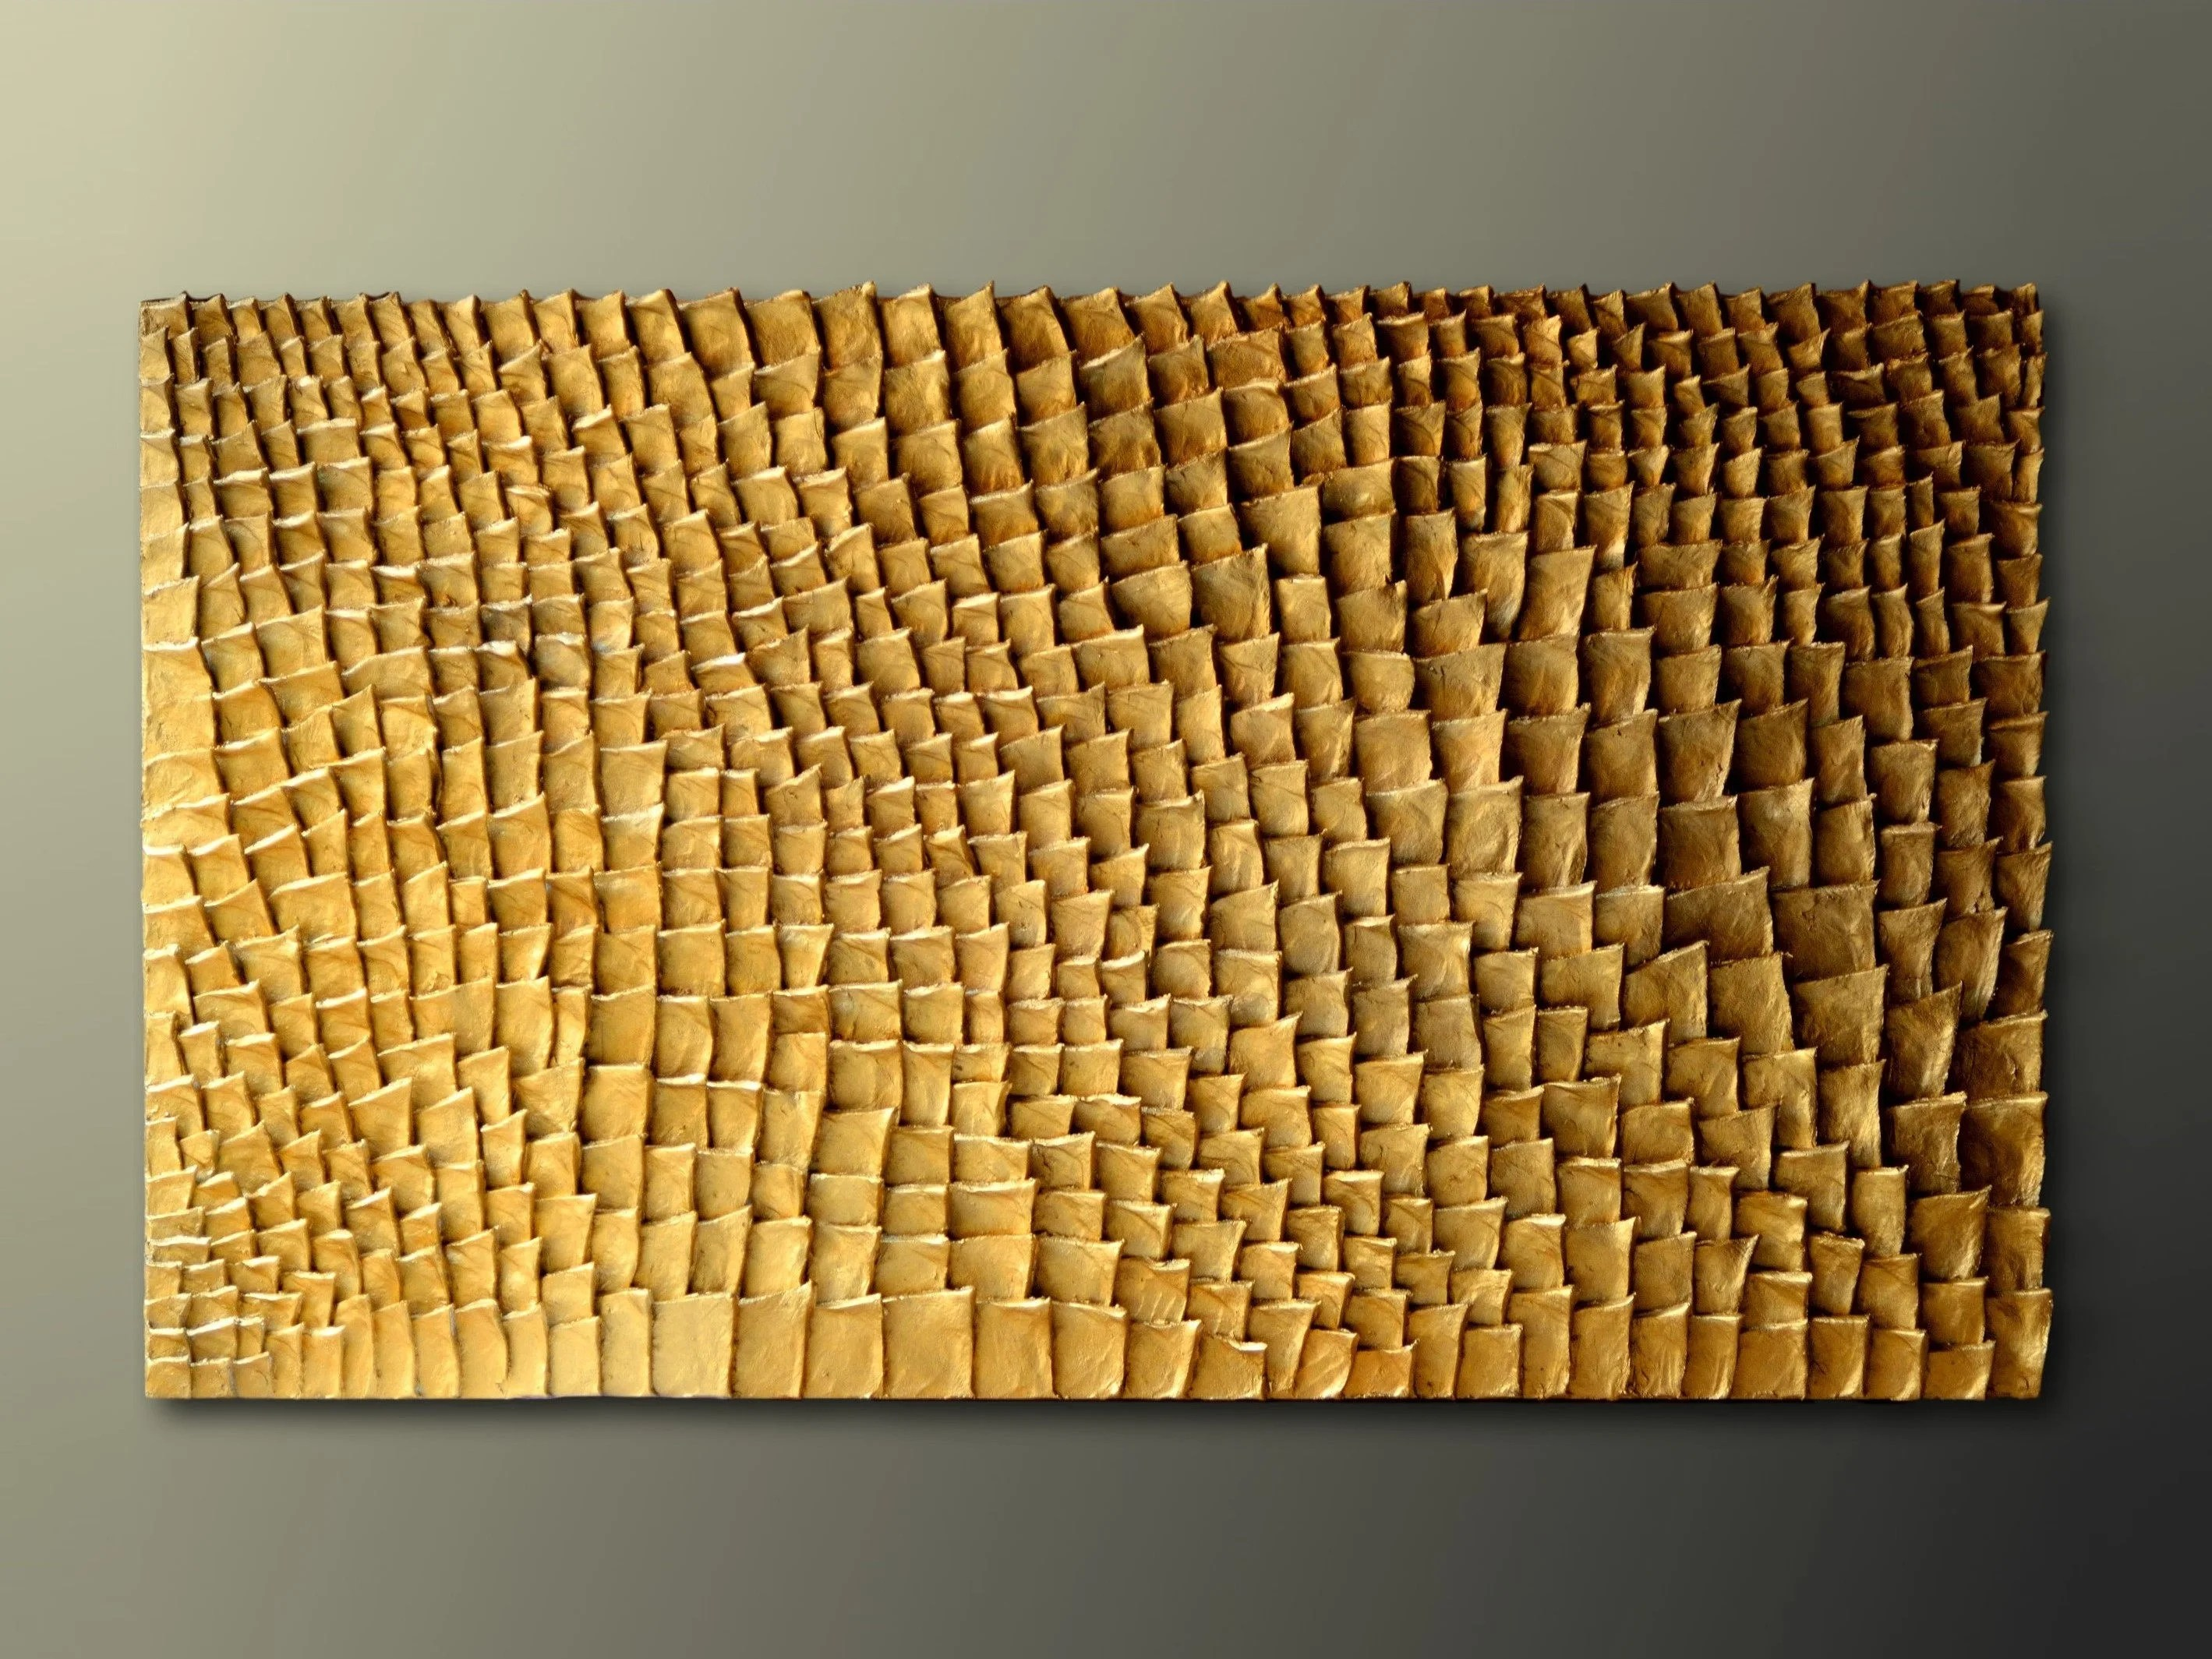 Lesara Quadri 3d Gold Wall Sculpture Organic Texture Wall Art Gold Wall Art